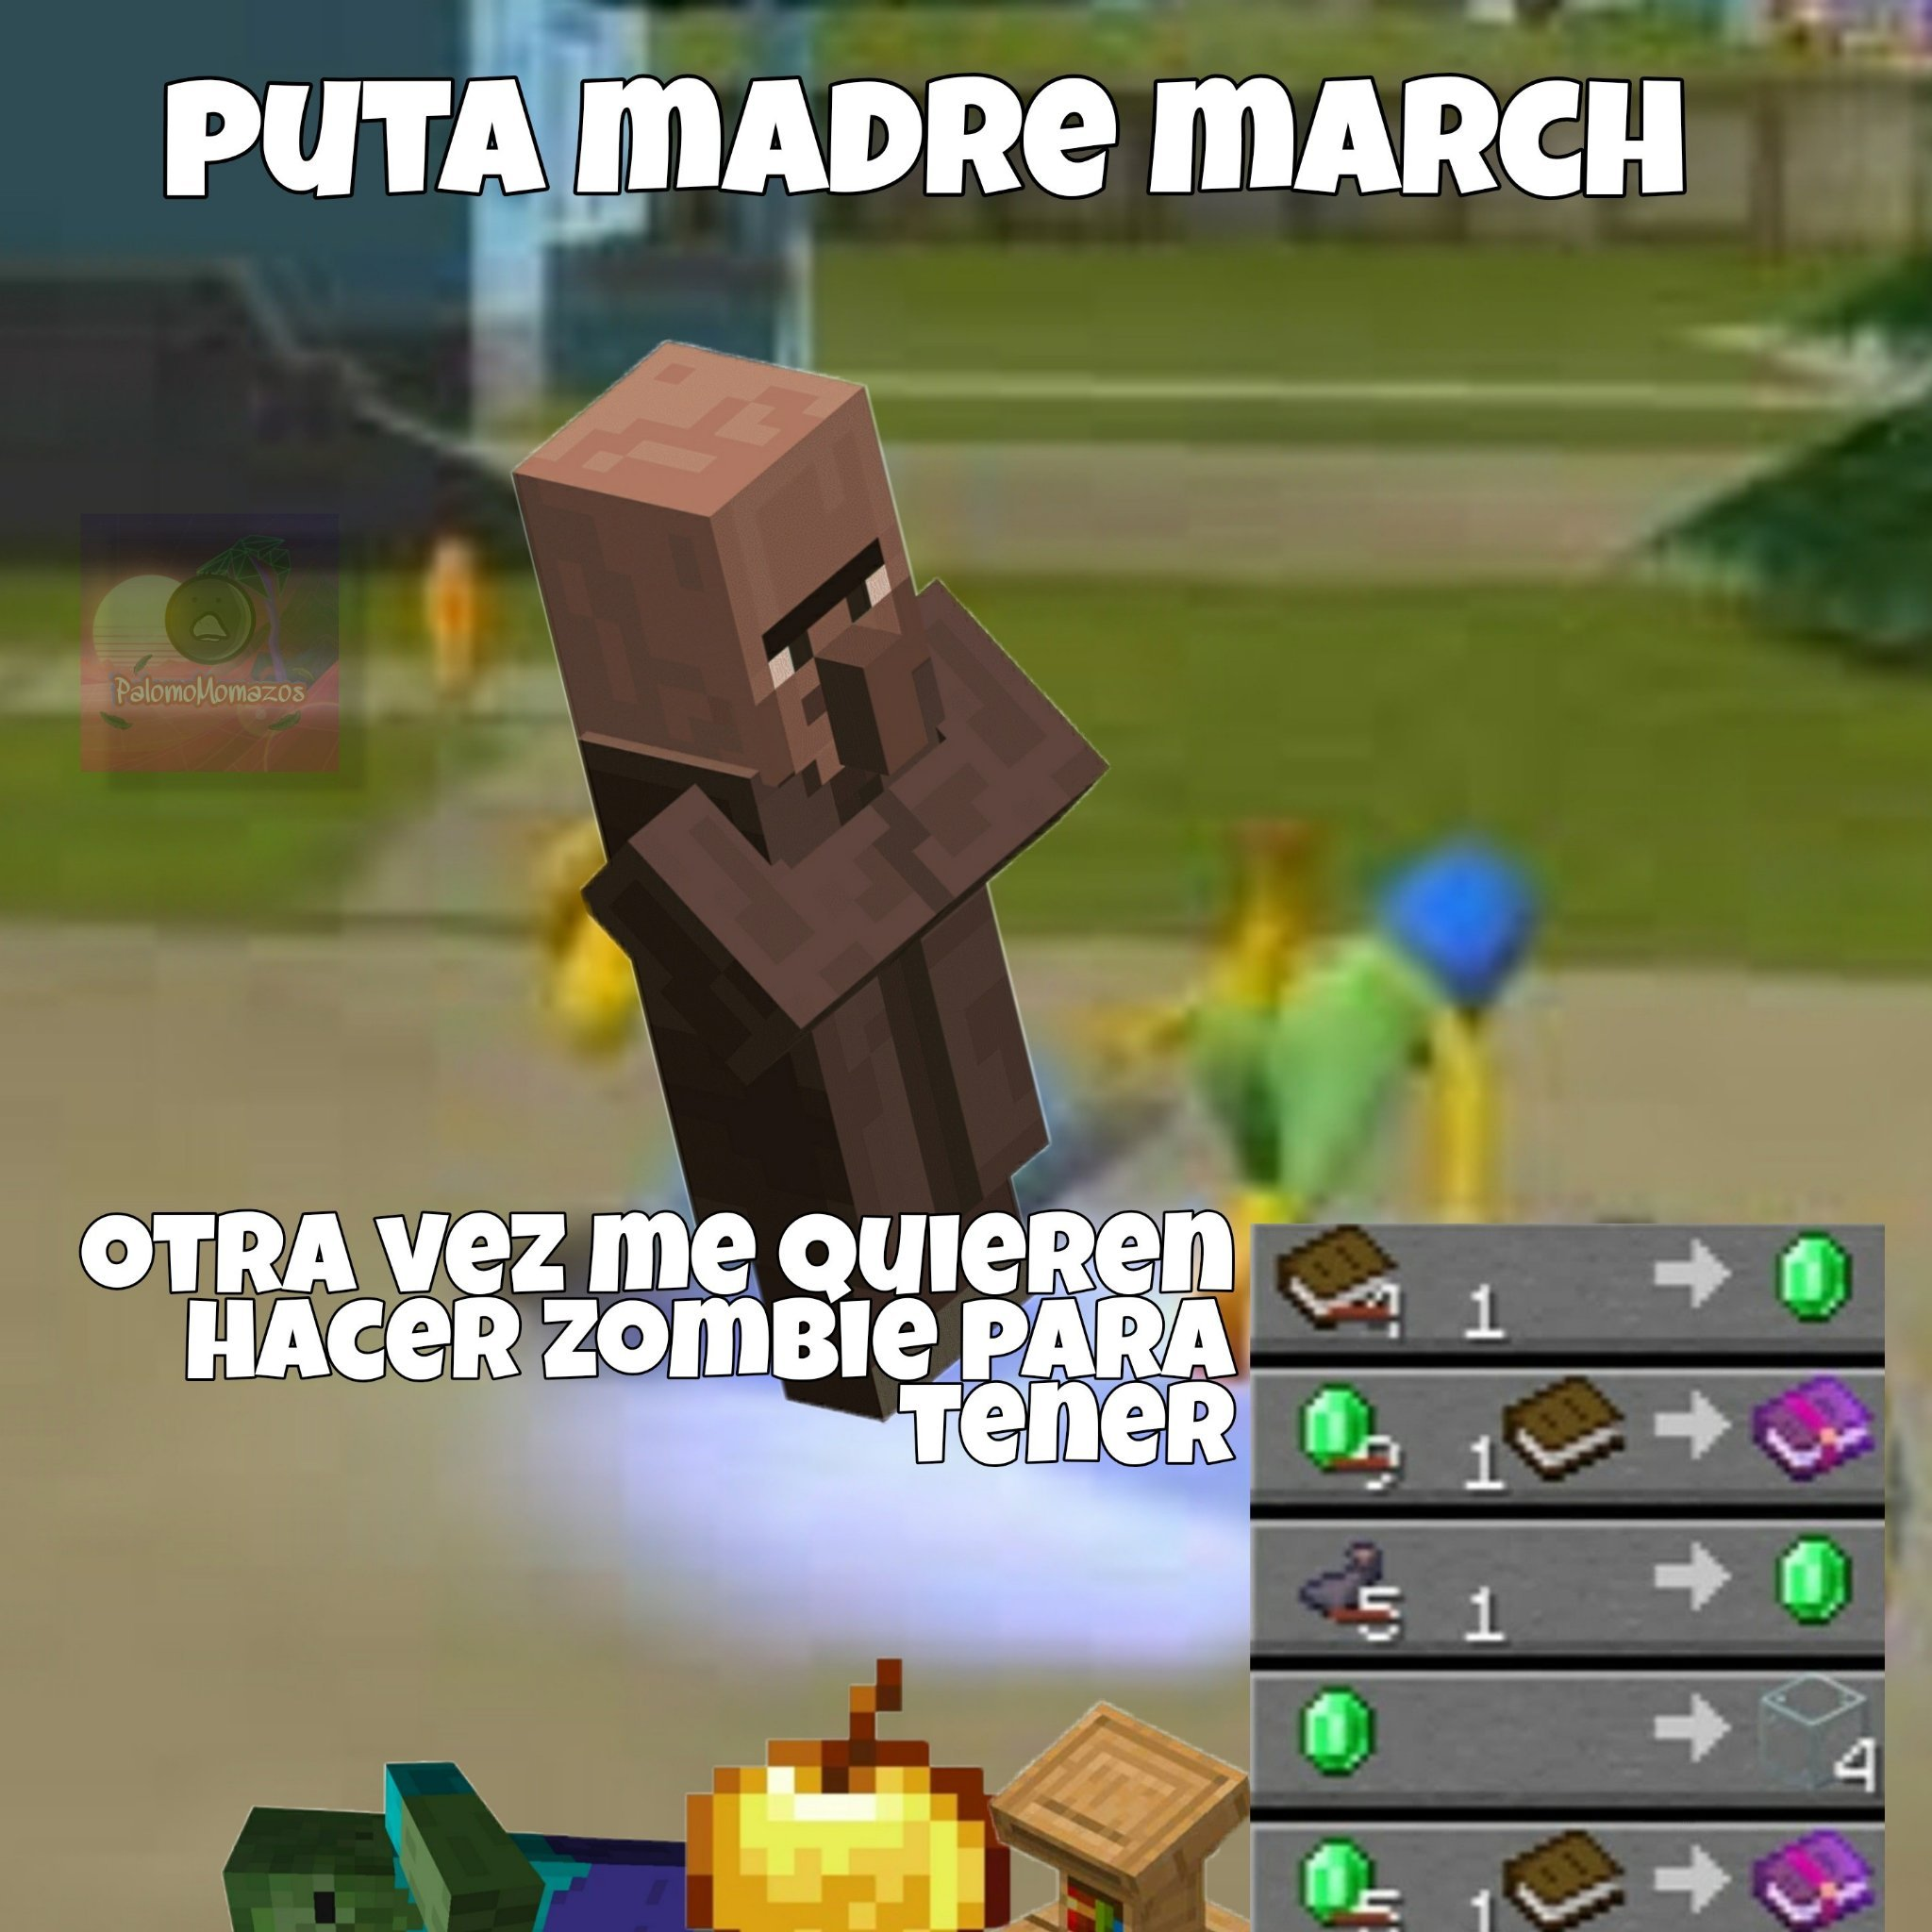 puta madre march - meme